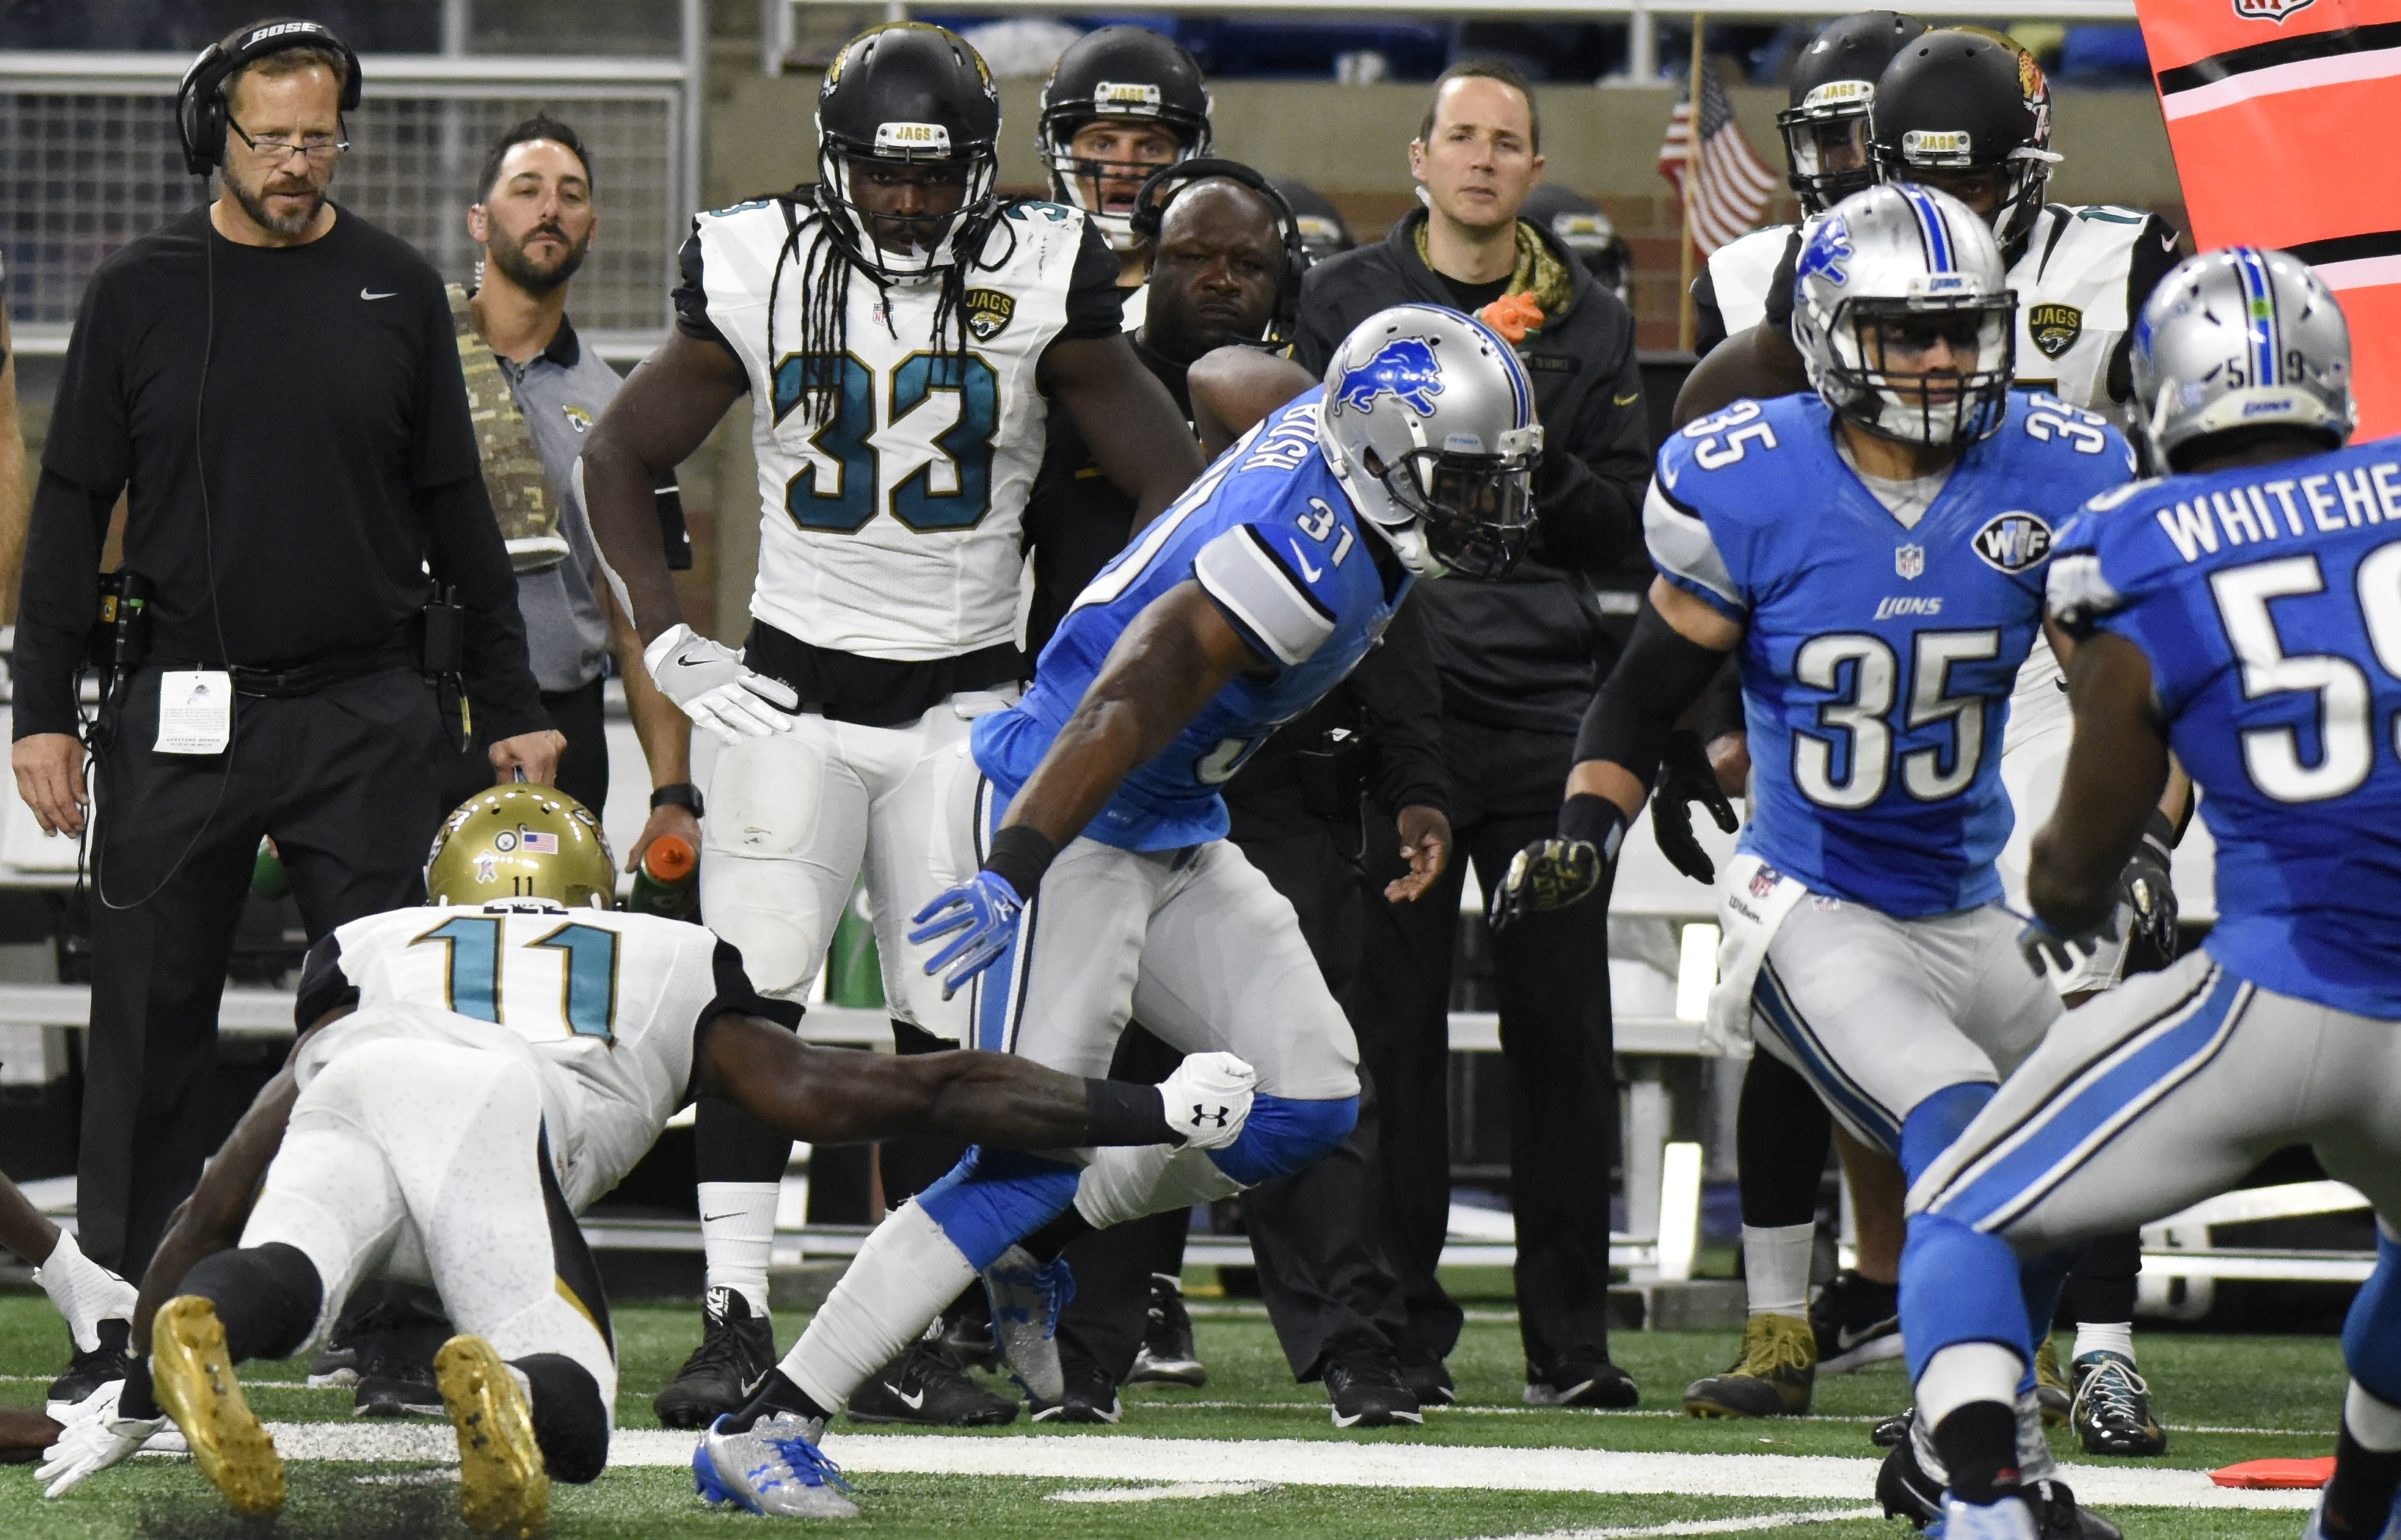 Detroit Lions strong safety Rafael Bush (31) runs an interception back for a 39-yard touchdown during the second half of an NFL football game against the Jacksonville Jaguars, Sunday, Nov. 20, 2016 in Detroit. (AP Photo/Jose Juarez)